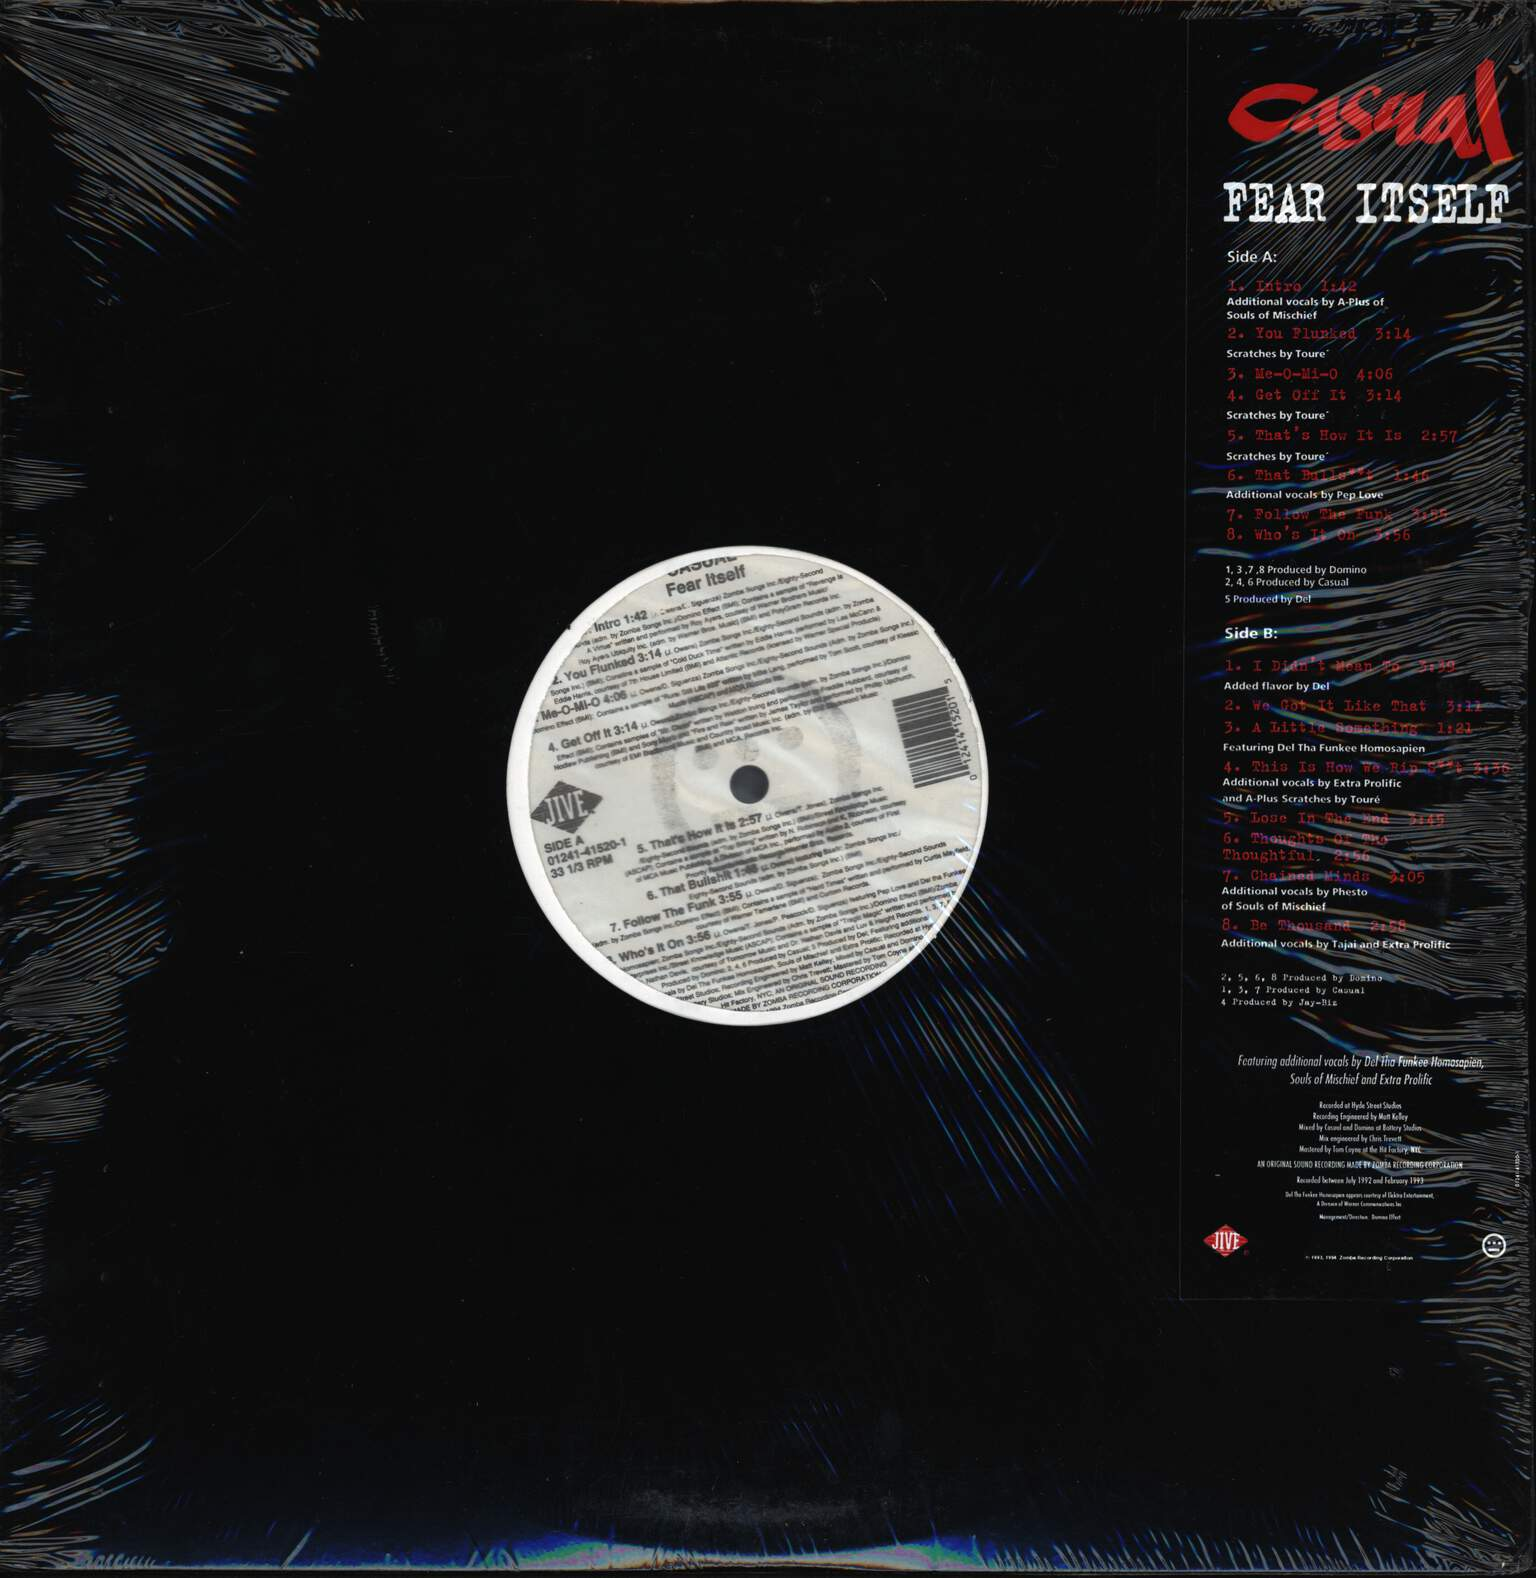 Casual: Fear Itself, LP (Vinyl)